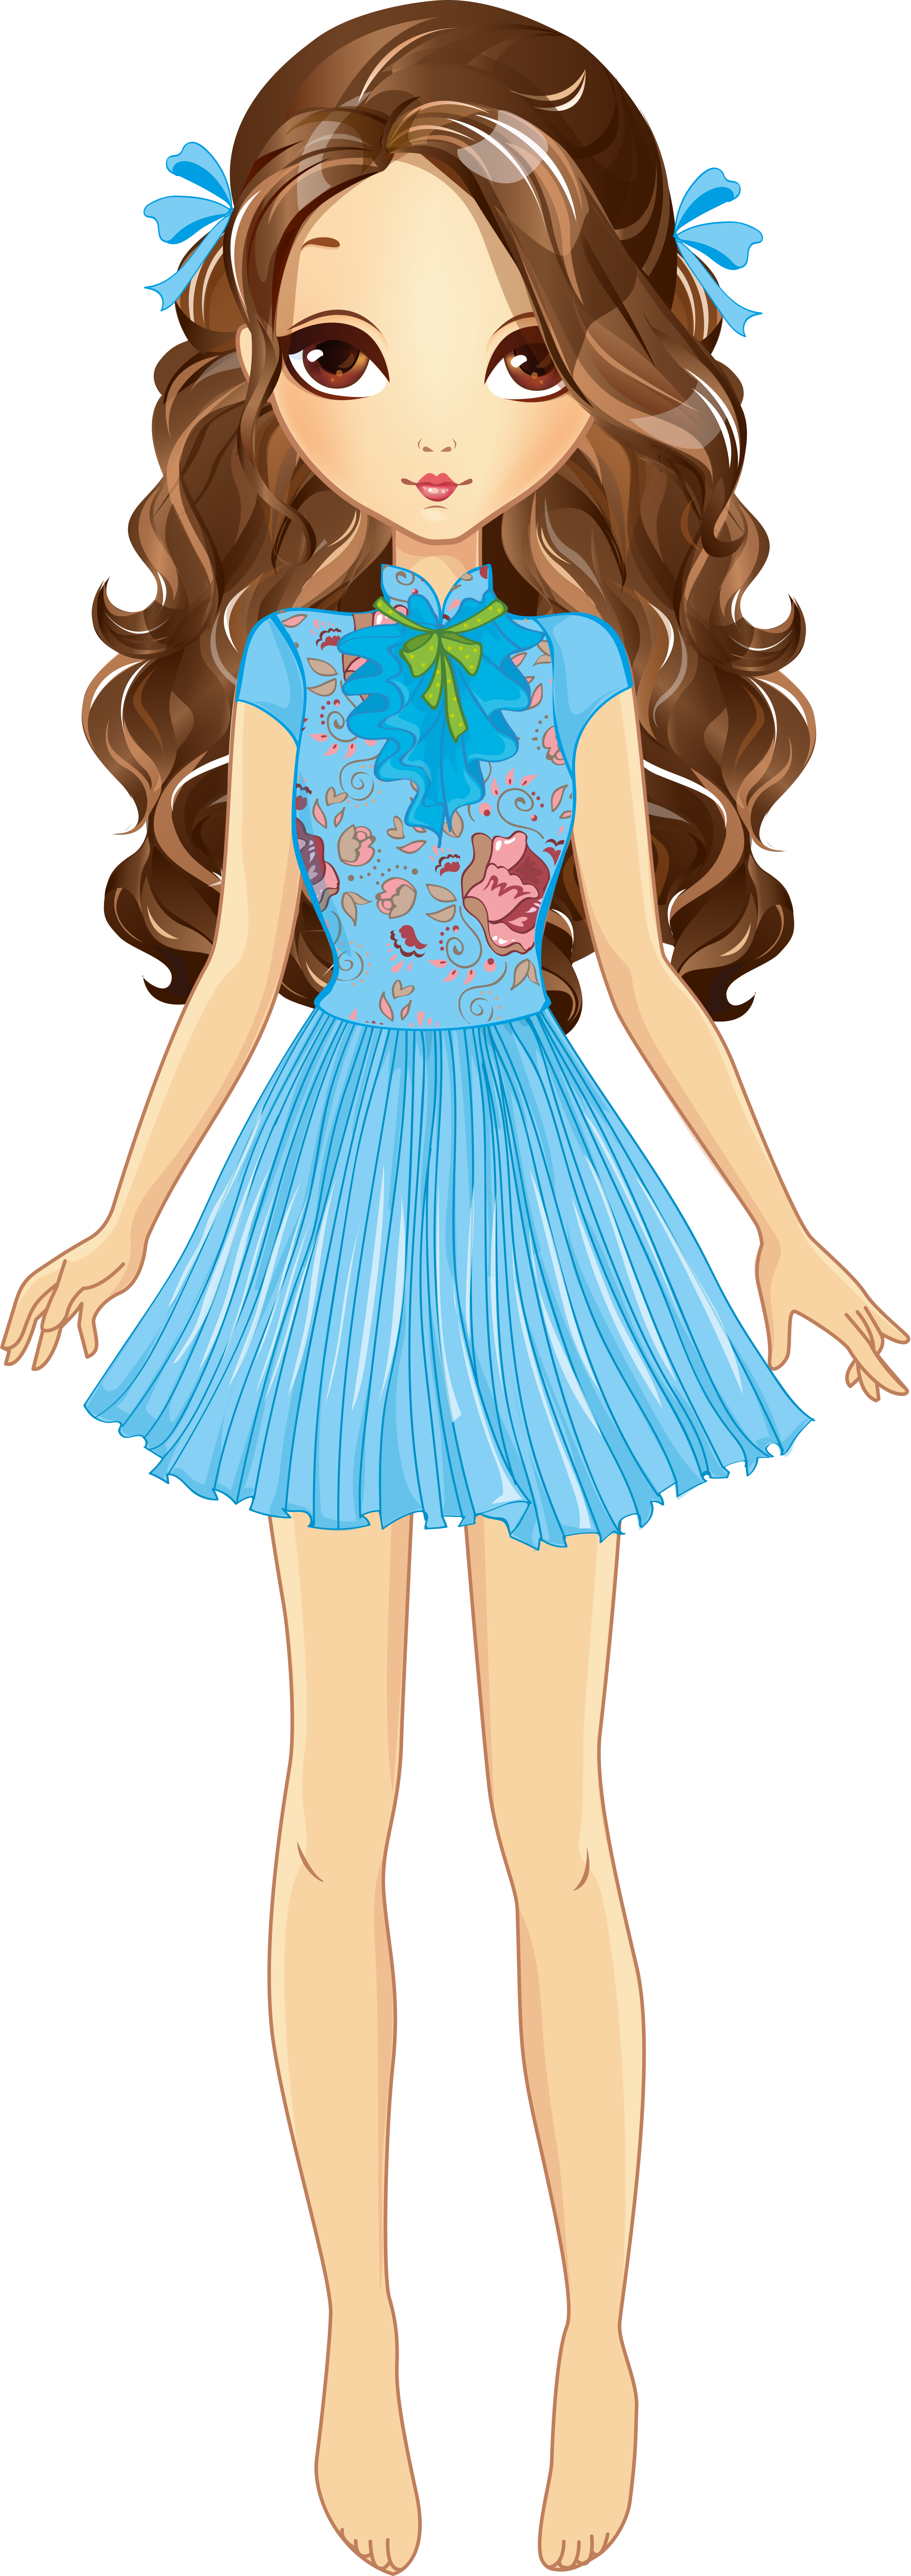 Png transparent clip art. Shy clipart girl doll